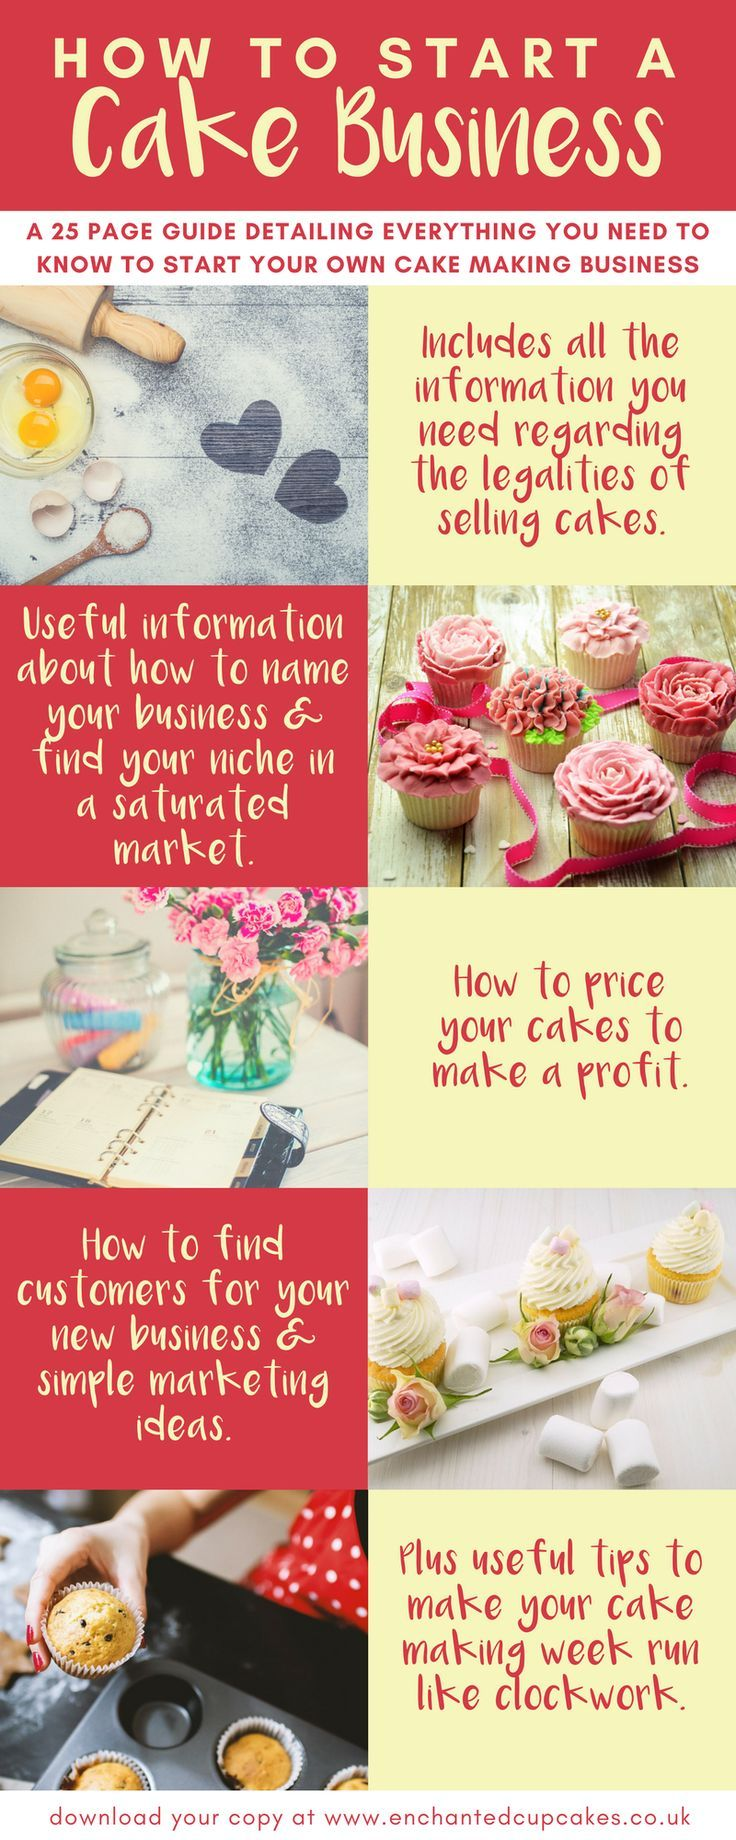 Cake Decorating Course Worthing : Best 25+ Cake name ideas on Pinterest